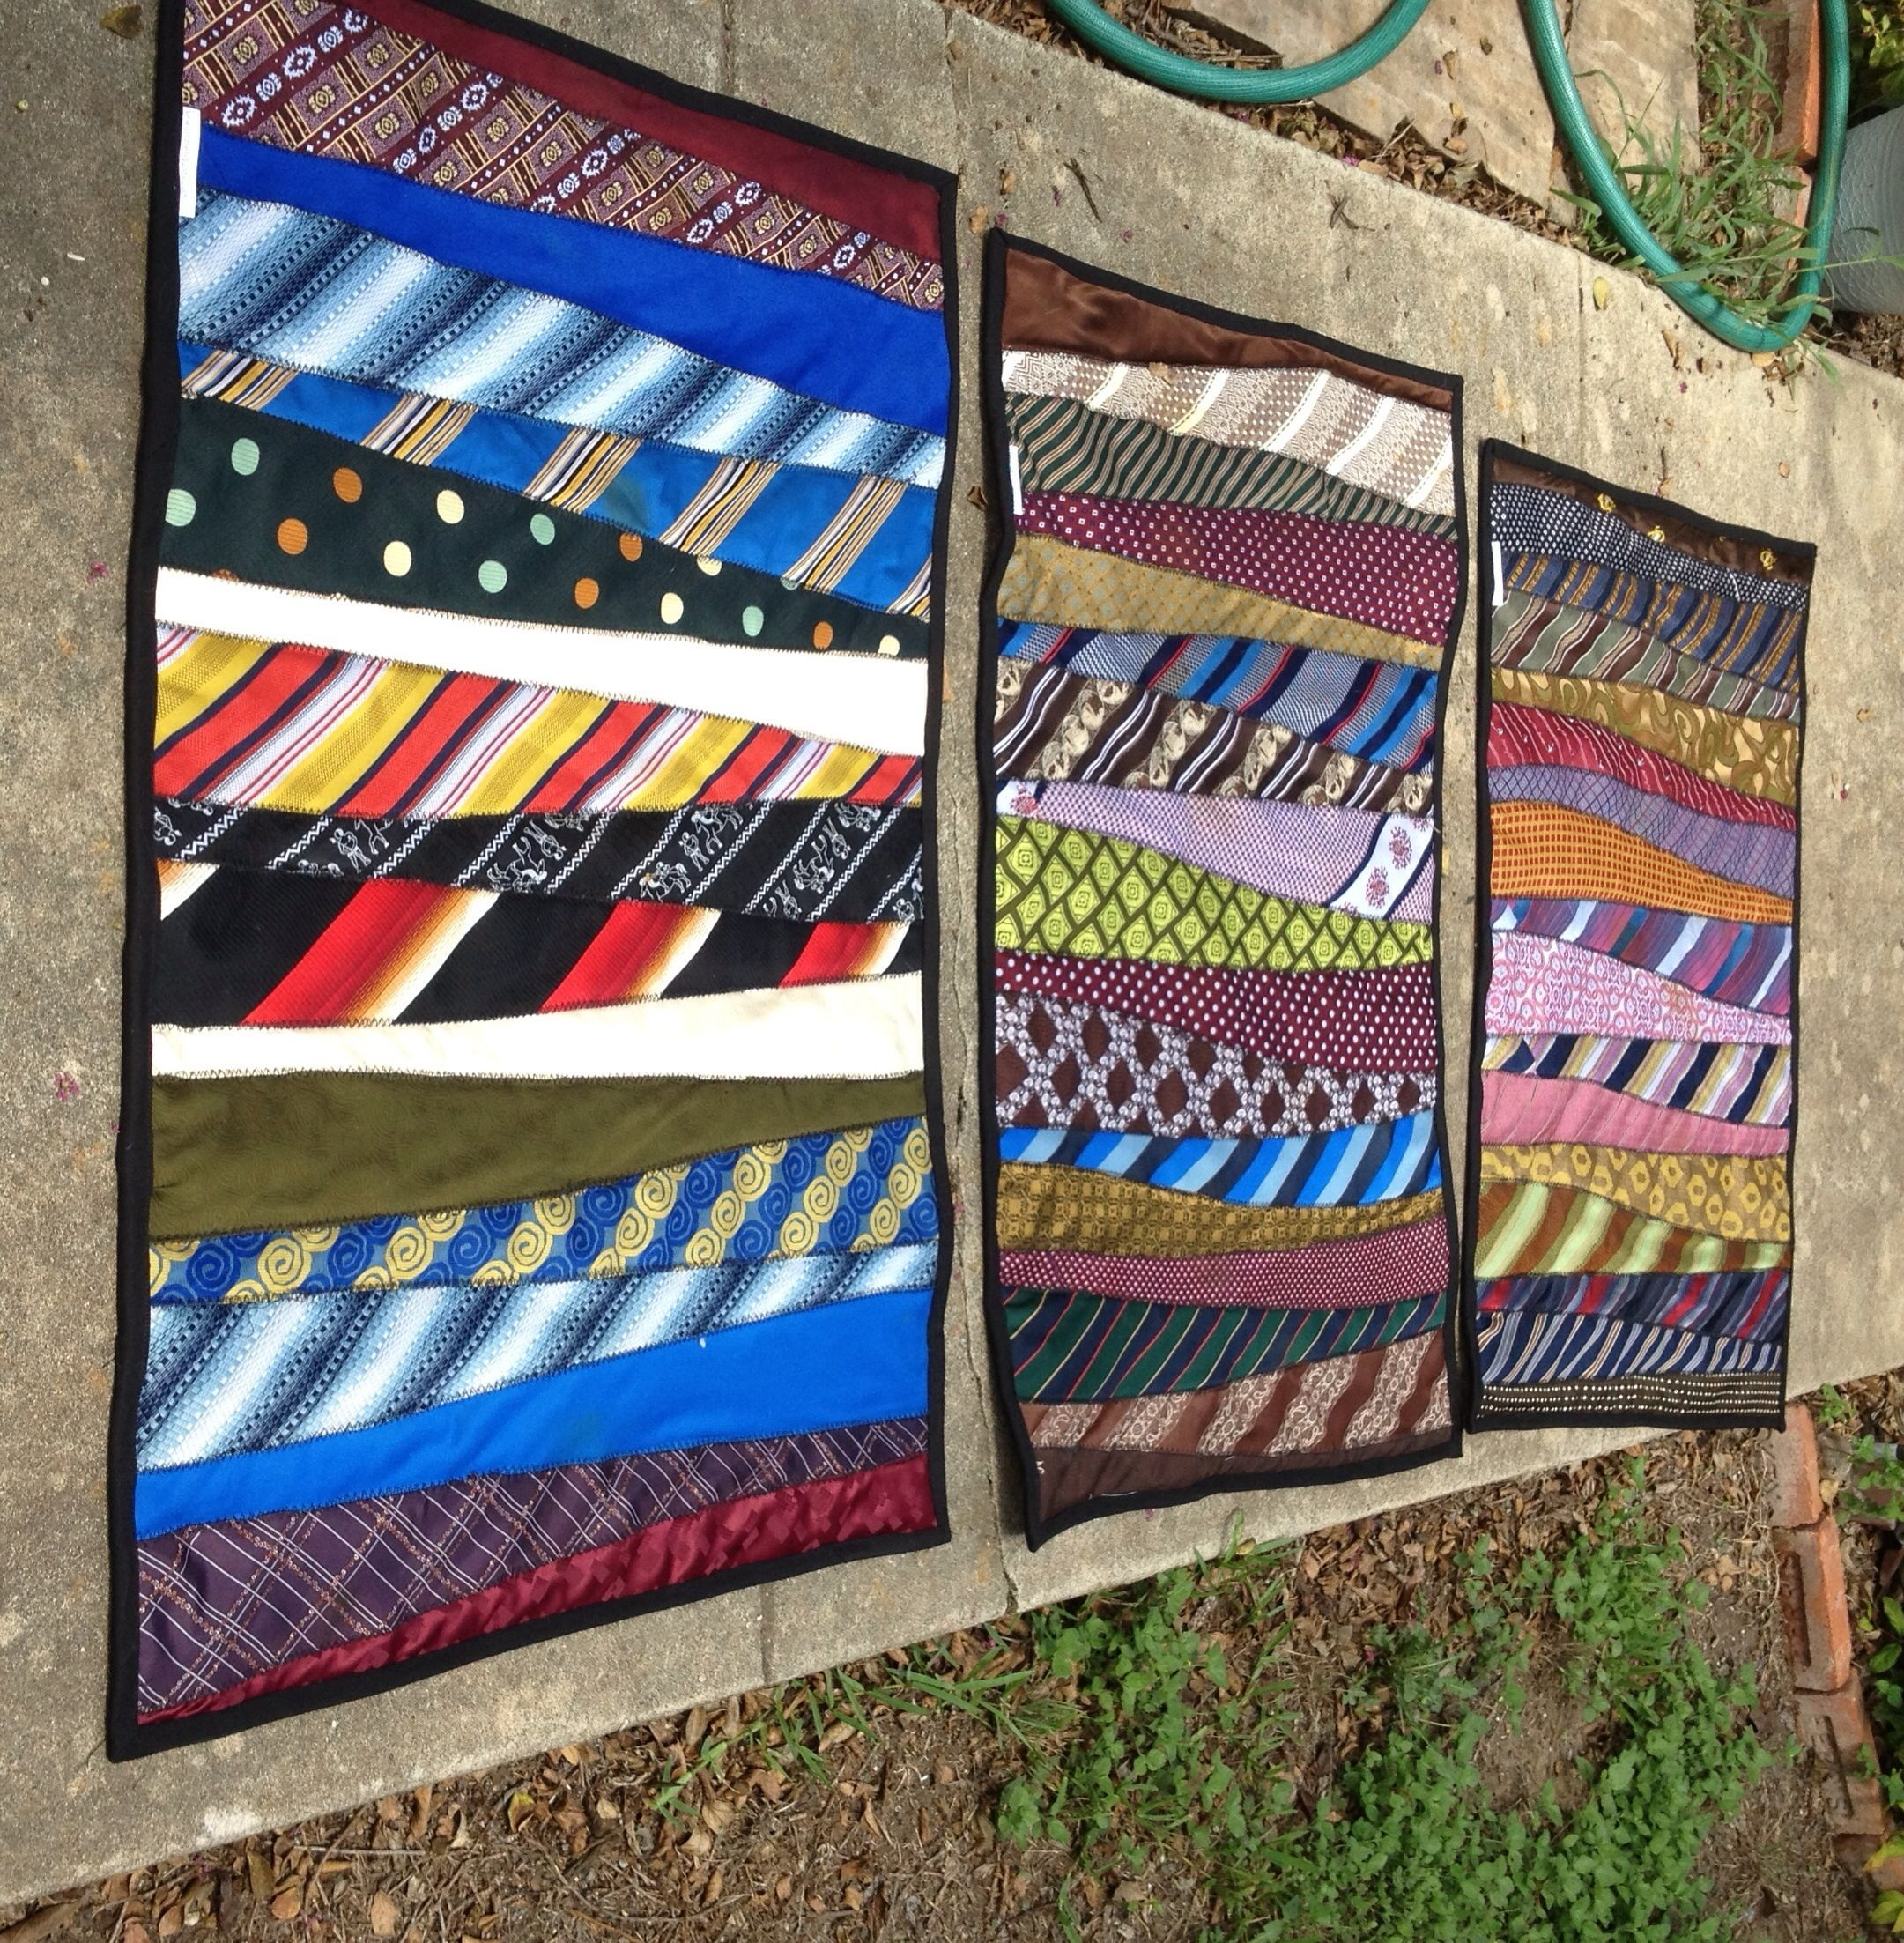 Necktie Rugs Or Wall Hangings Sewing With Neckties